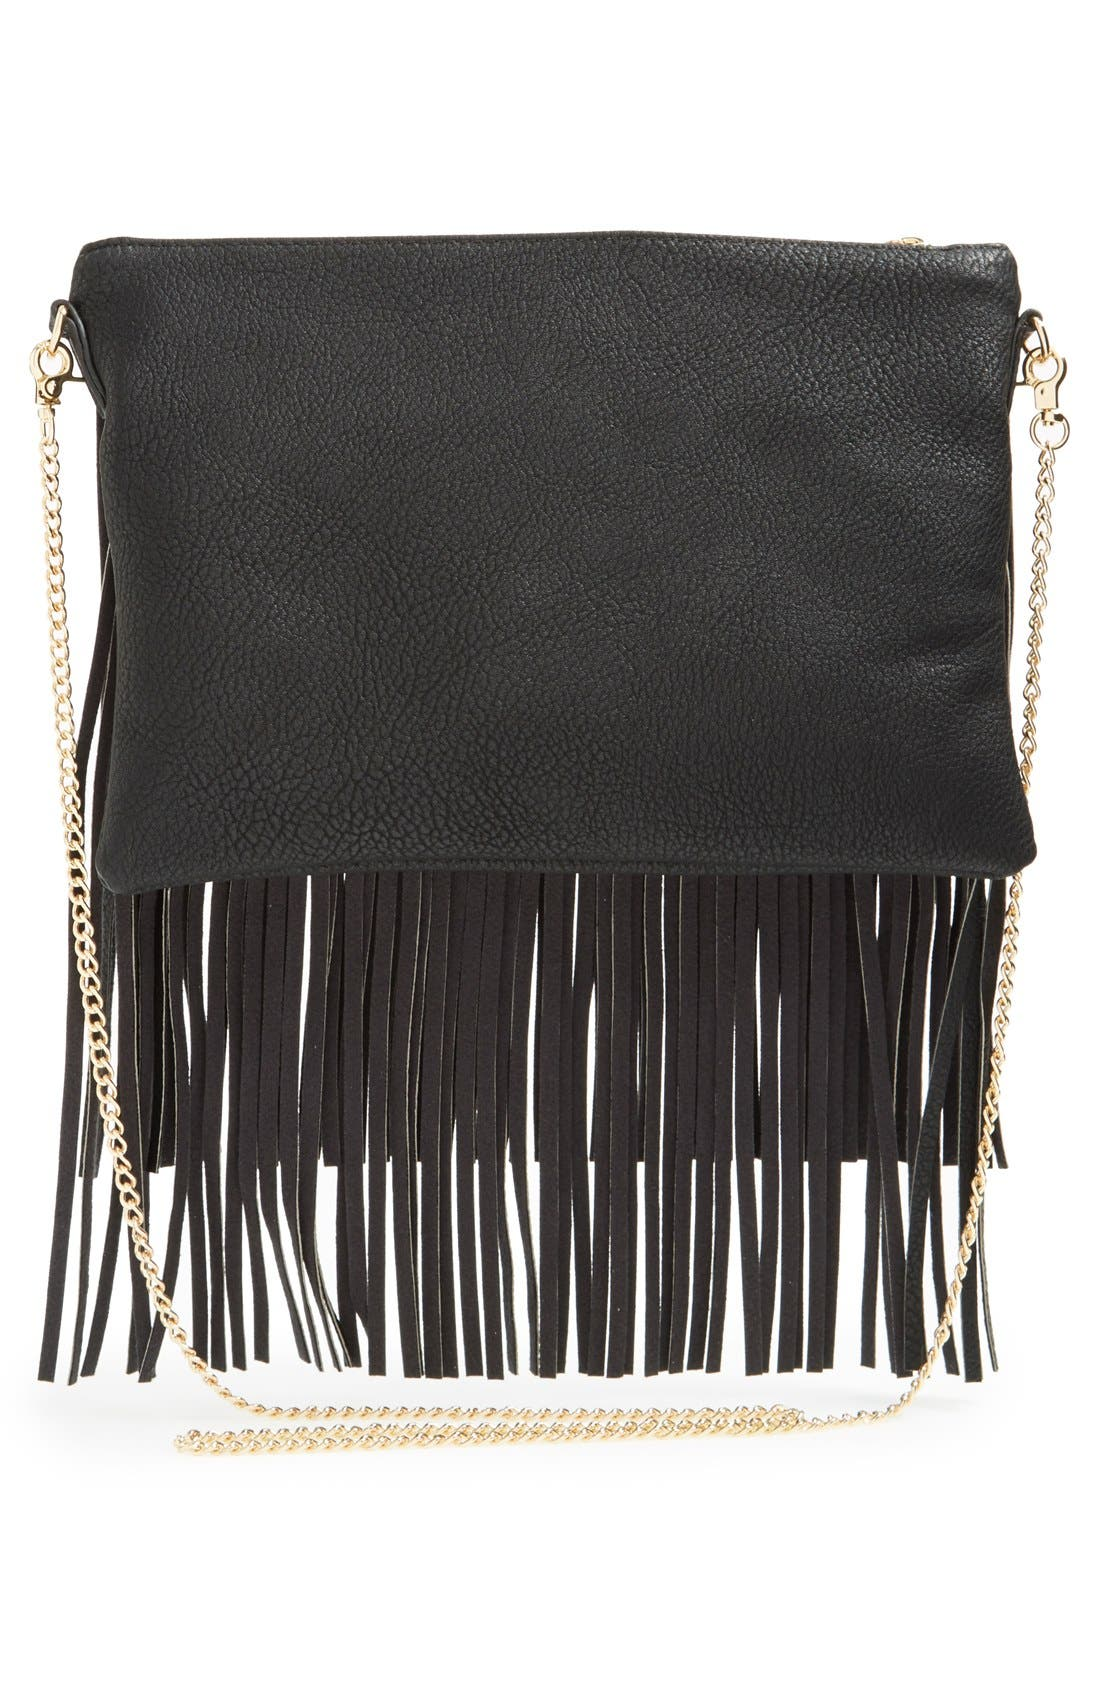 'Rose' Fringe Faux Leather Convertible Crossbody Bag,                             Alternate thumbnail 2, color,                             001